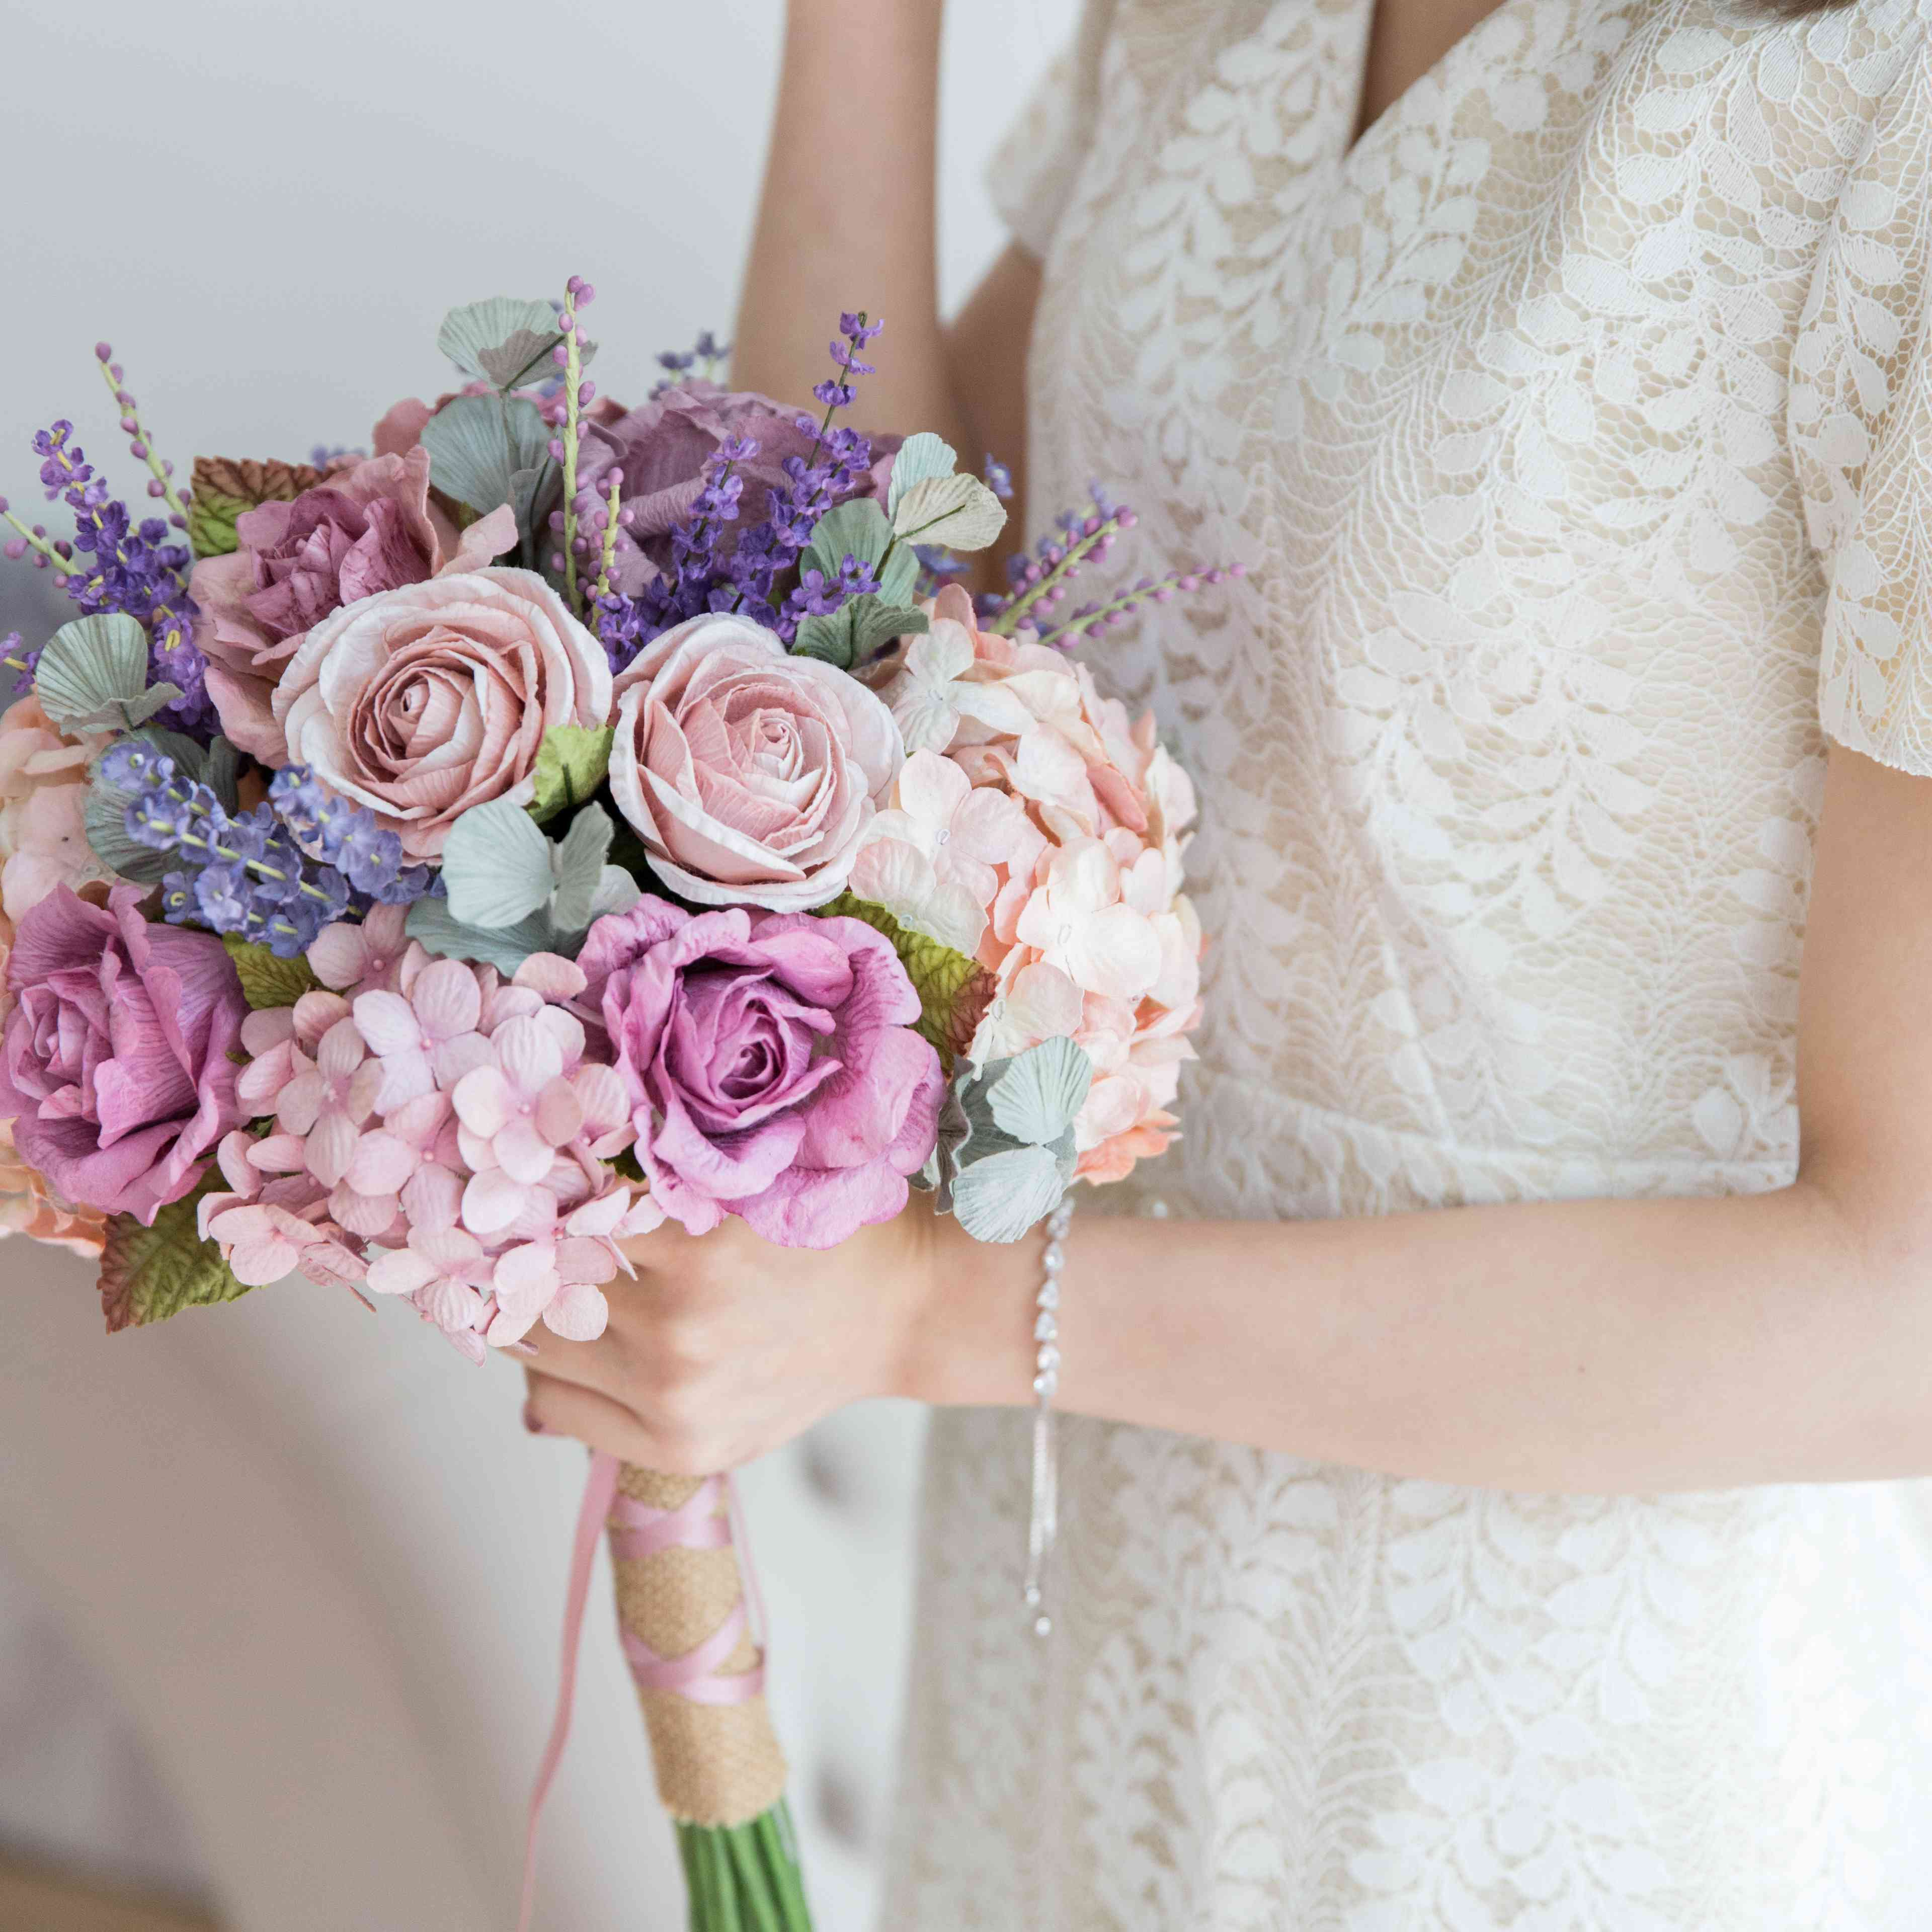 13 Diy Paper Flowers For The Nontraditional Bride